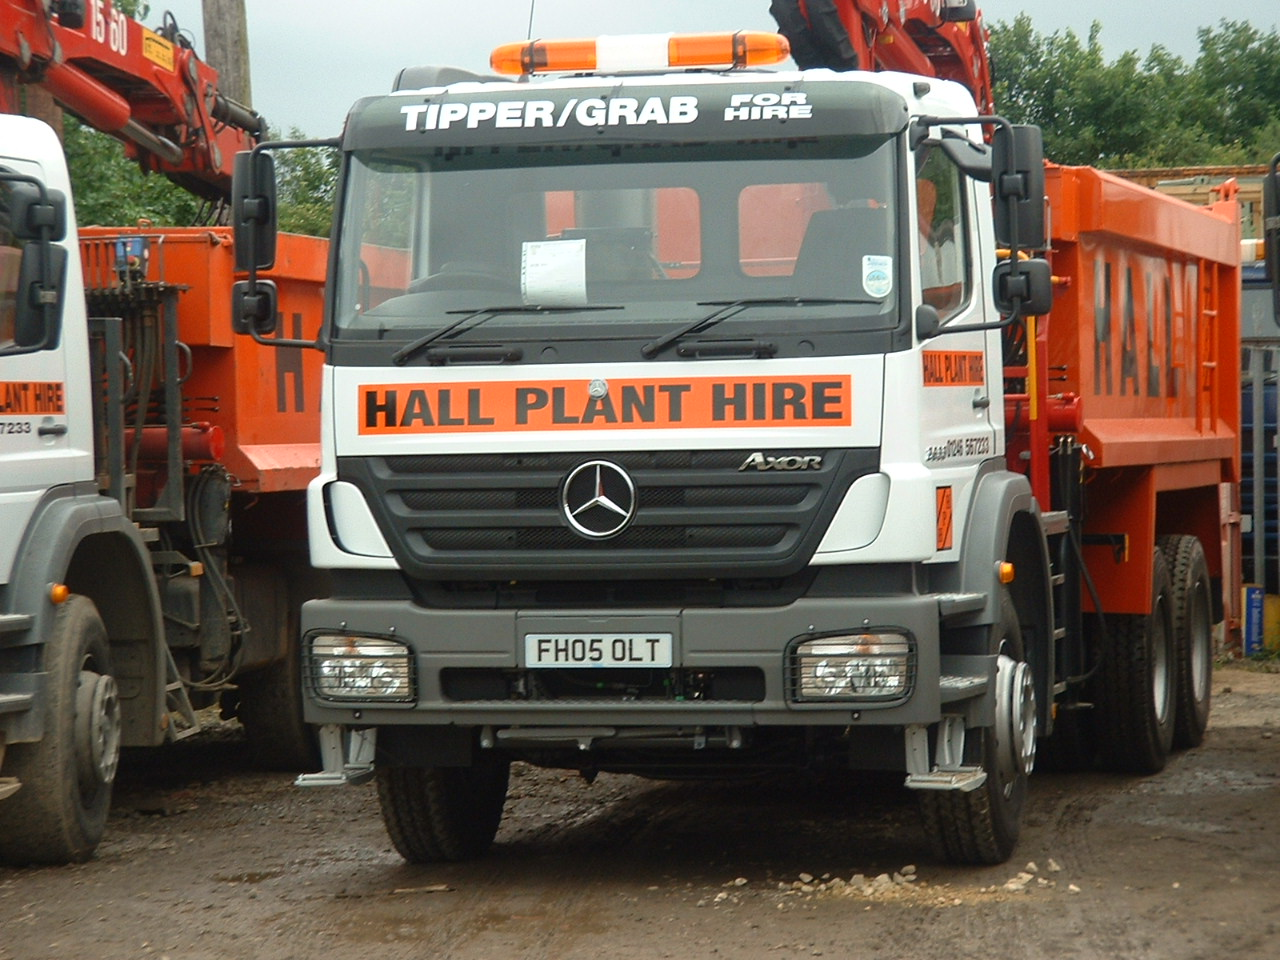 6 Wheel Tipper (C/W Grab)